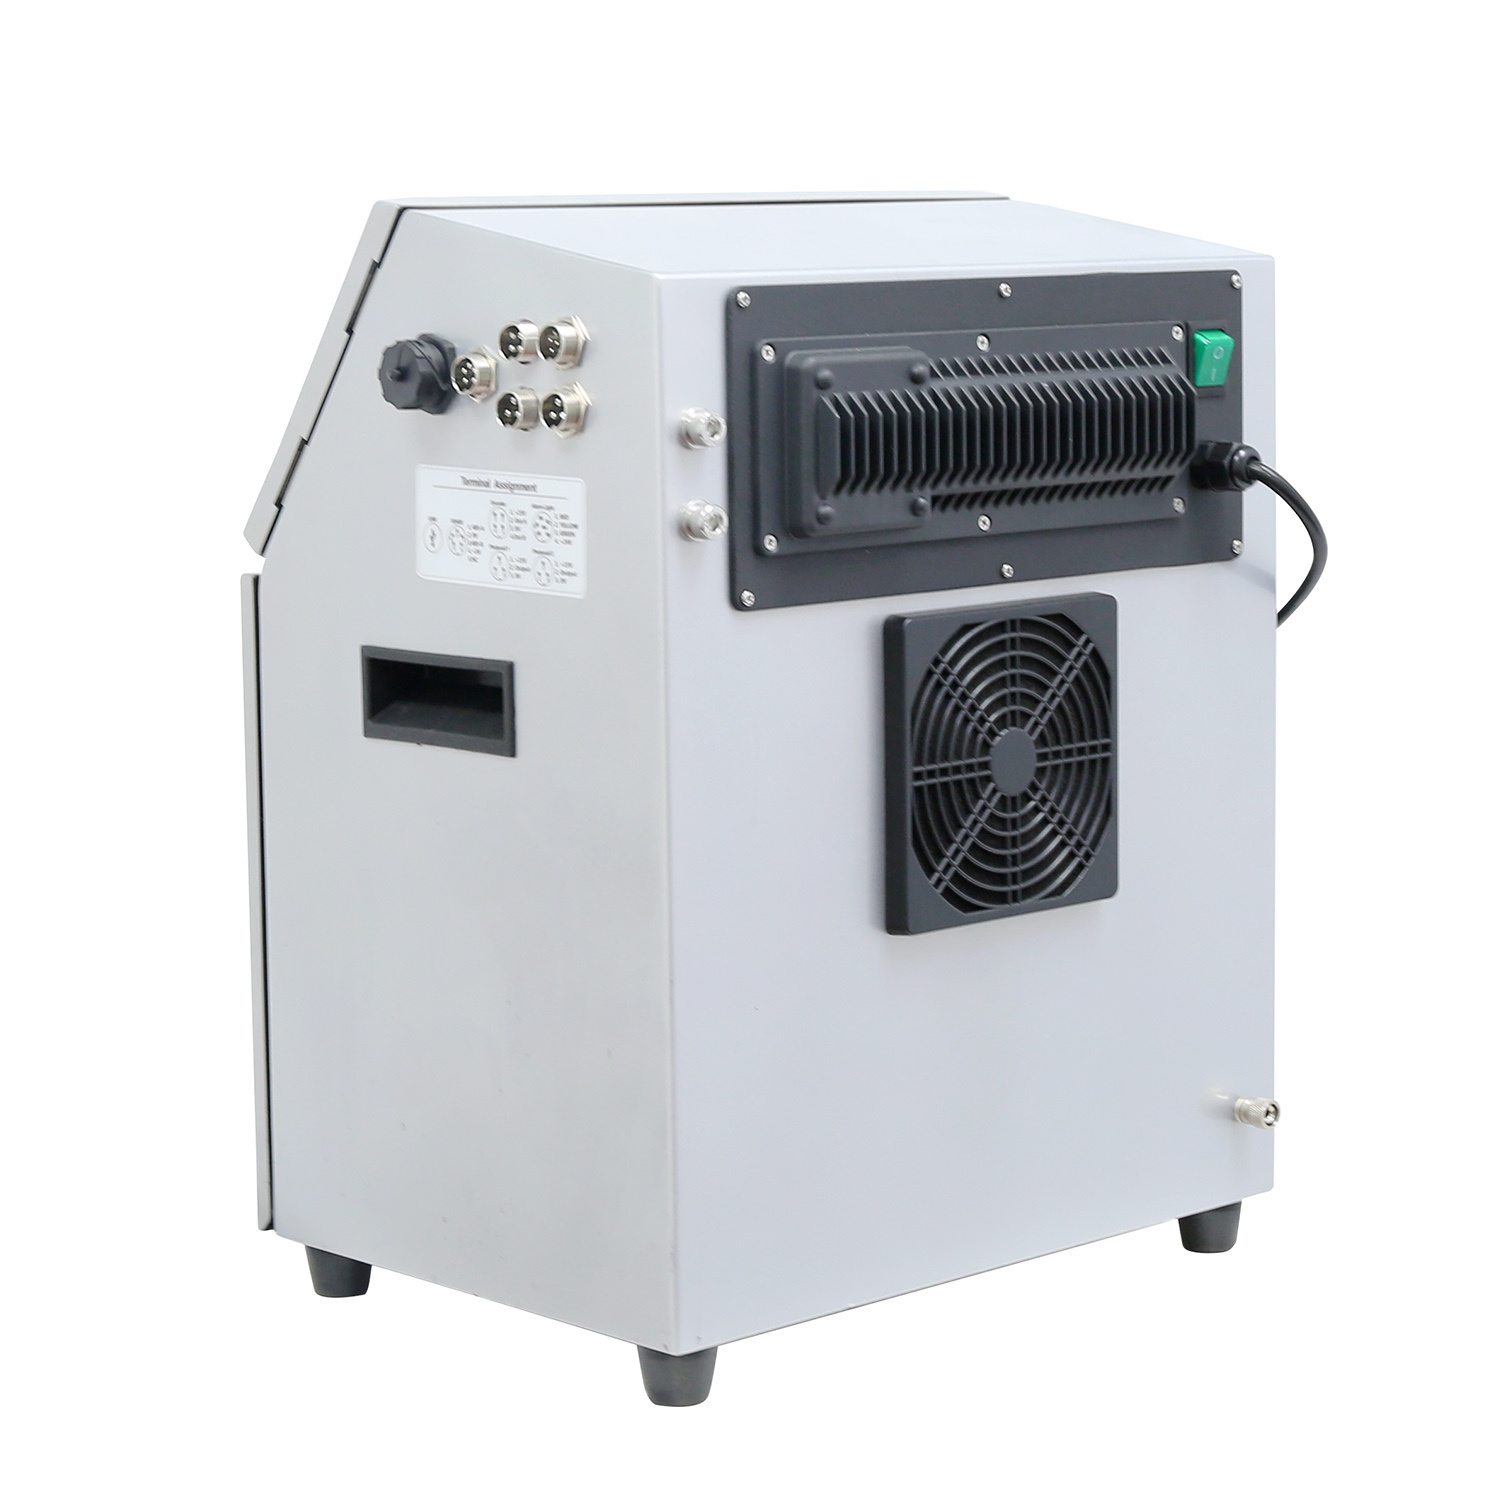 Lead Tech Lt800 Label Digital Printing Machine Automaticly